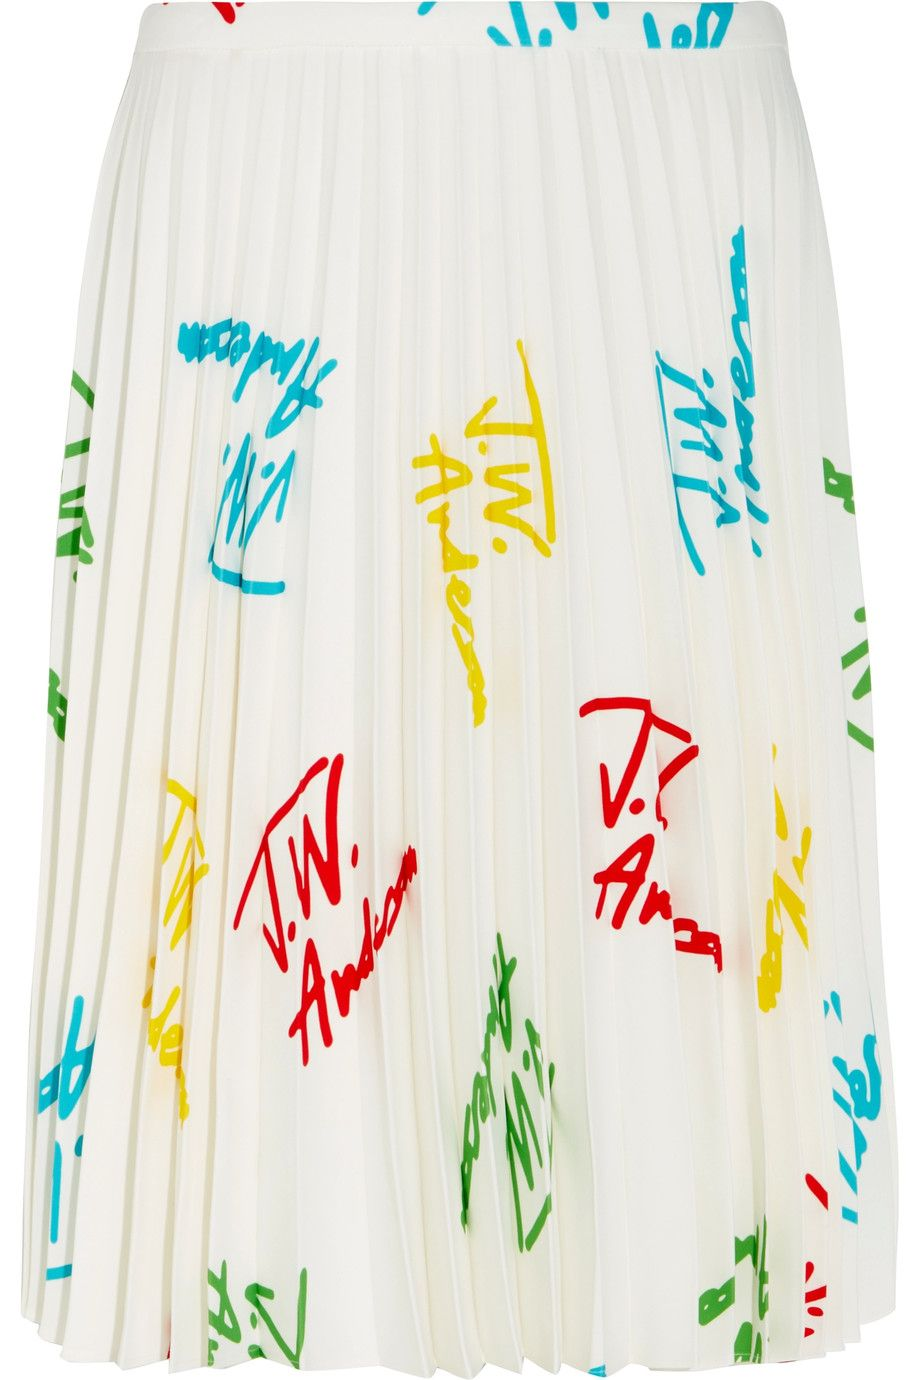 J.W.ANDERSON Pleated printed stretch-crepe skirt. #j.w.anderson #cloth #skirt